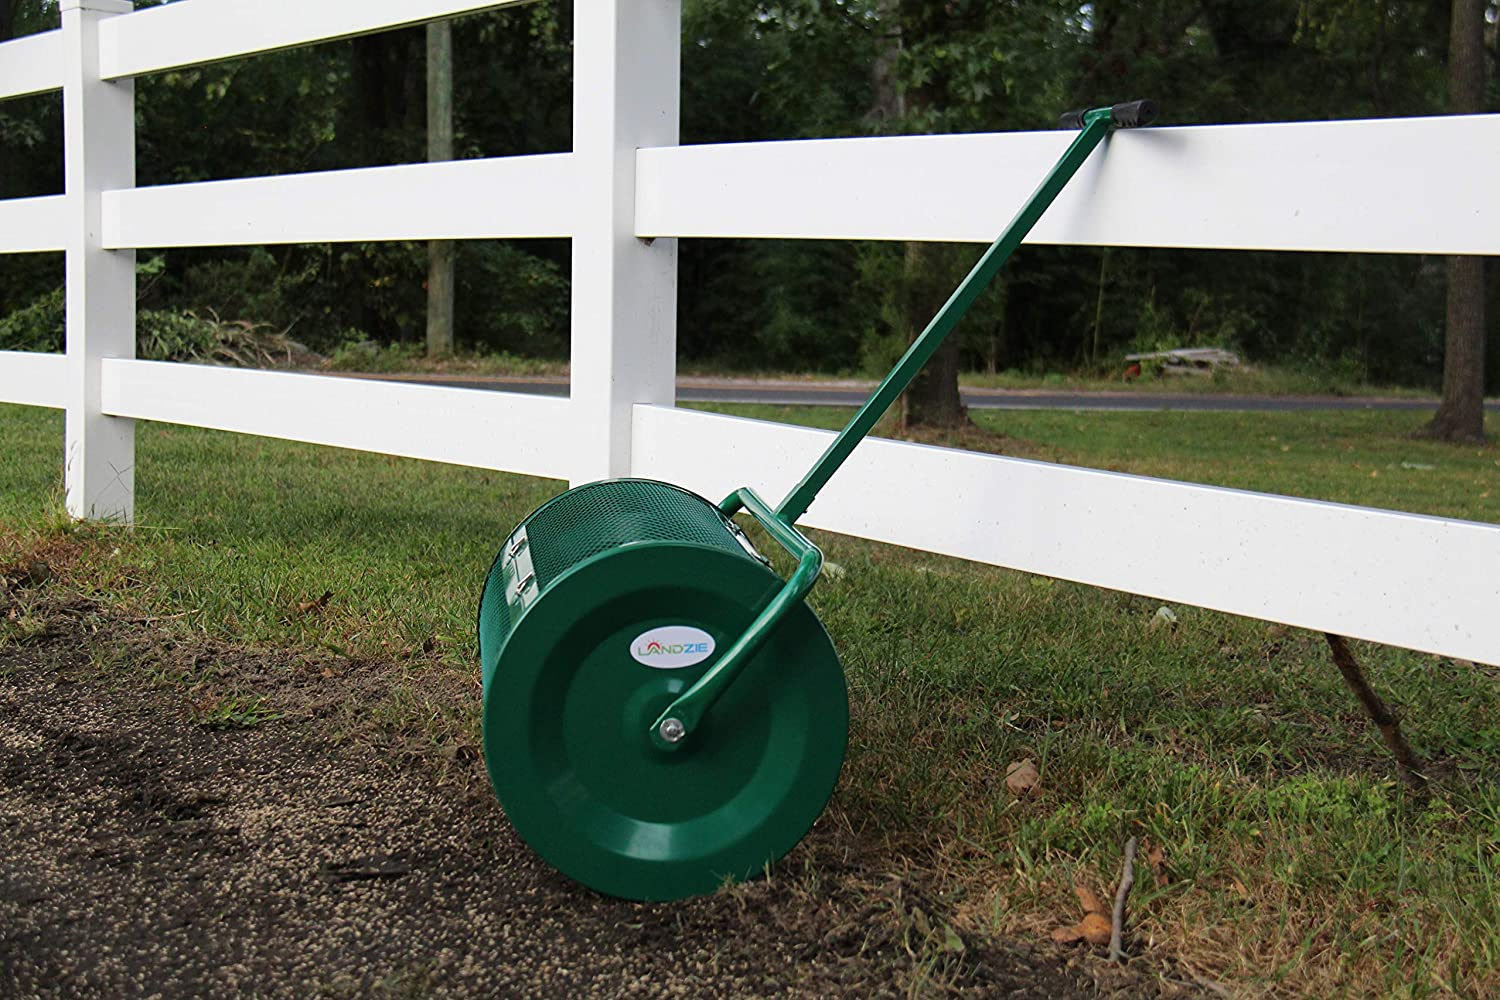 Landzie Peat Moss Spreader leaning on a fence